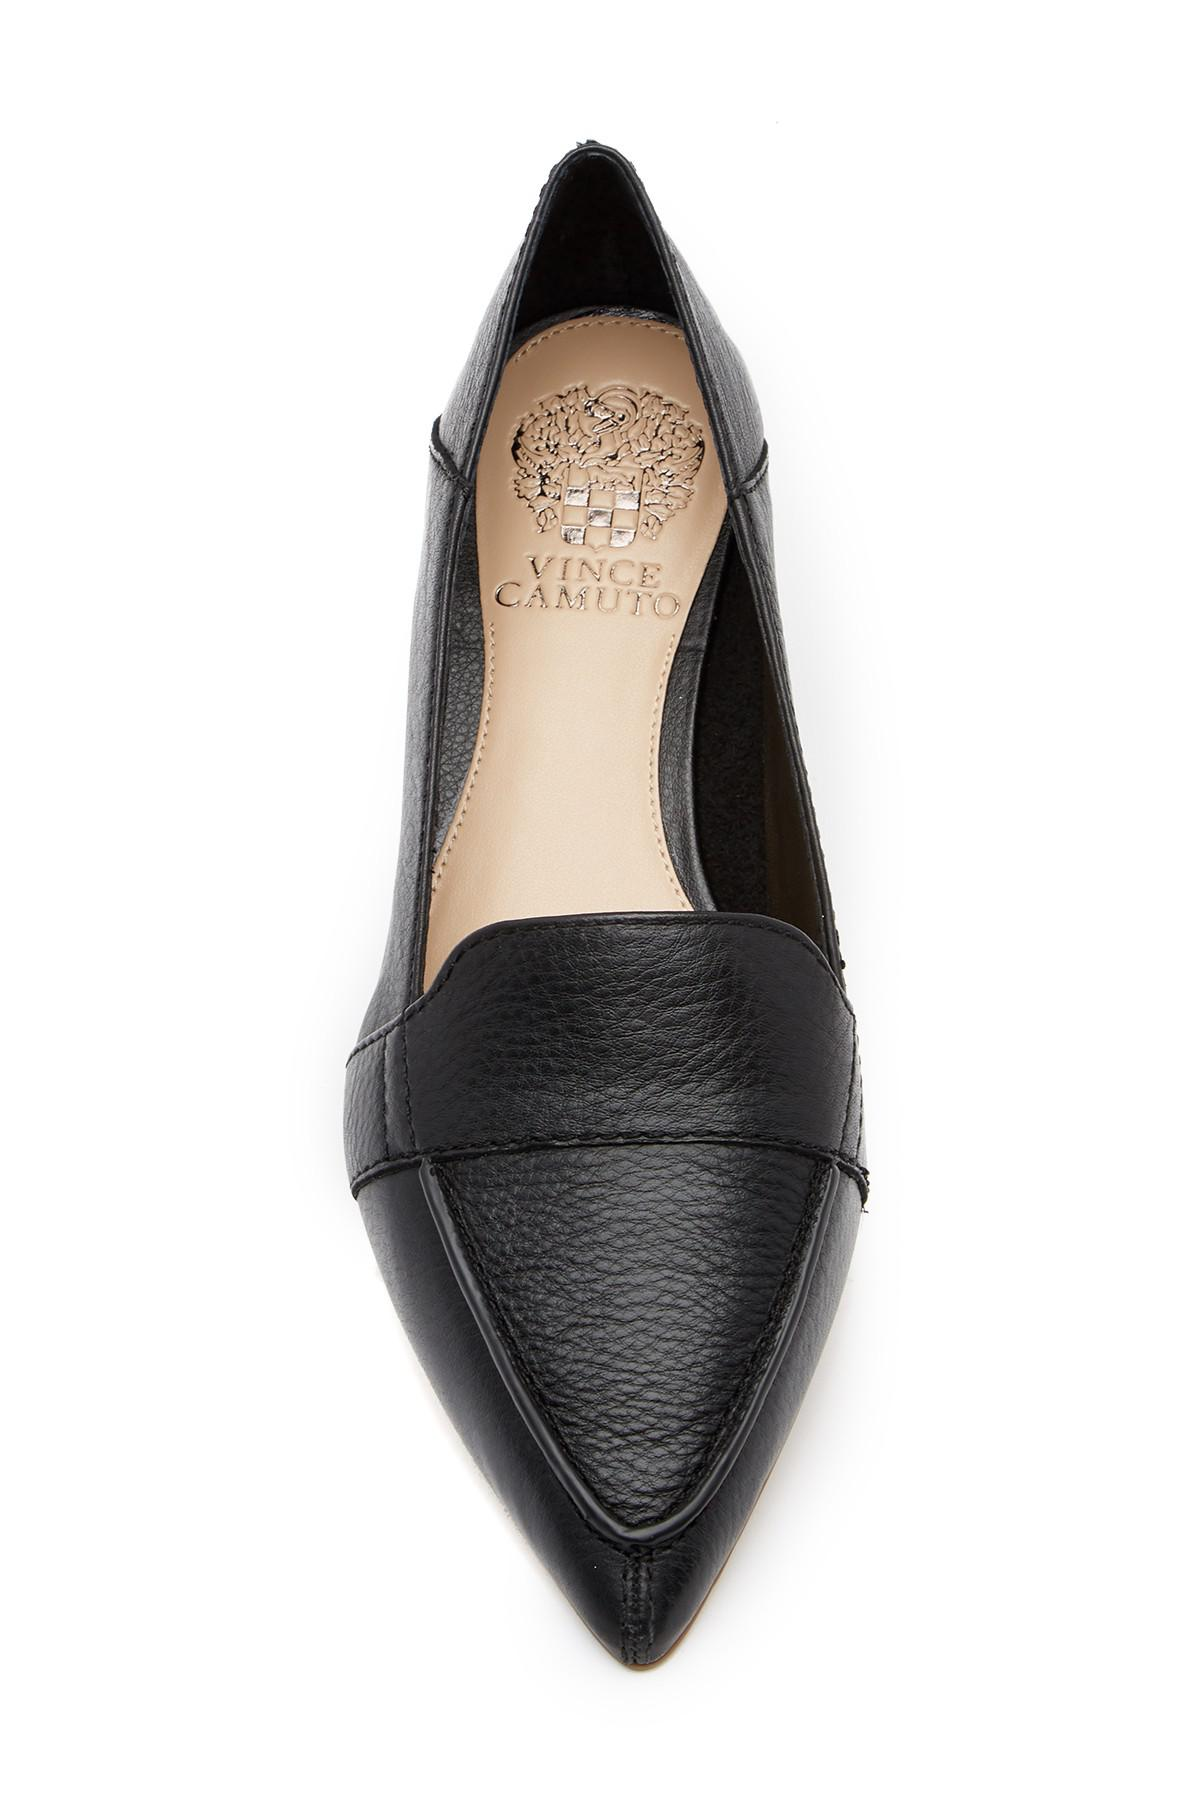 b4b5317dd5e Vince Camuto - Black Maita Pointed Toe Leather Loafer - Lyst. View  fullscreen